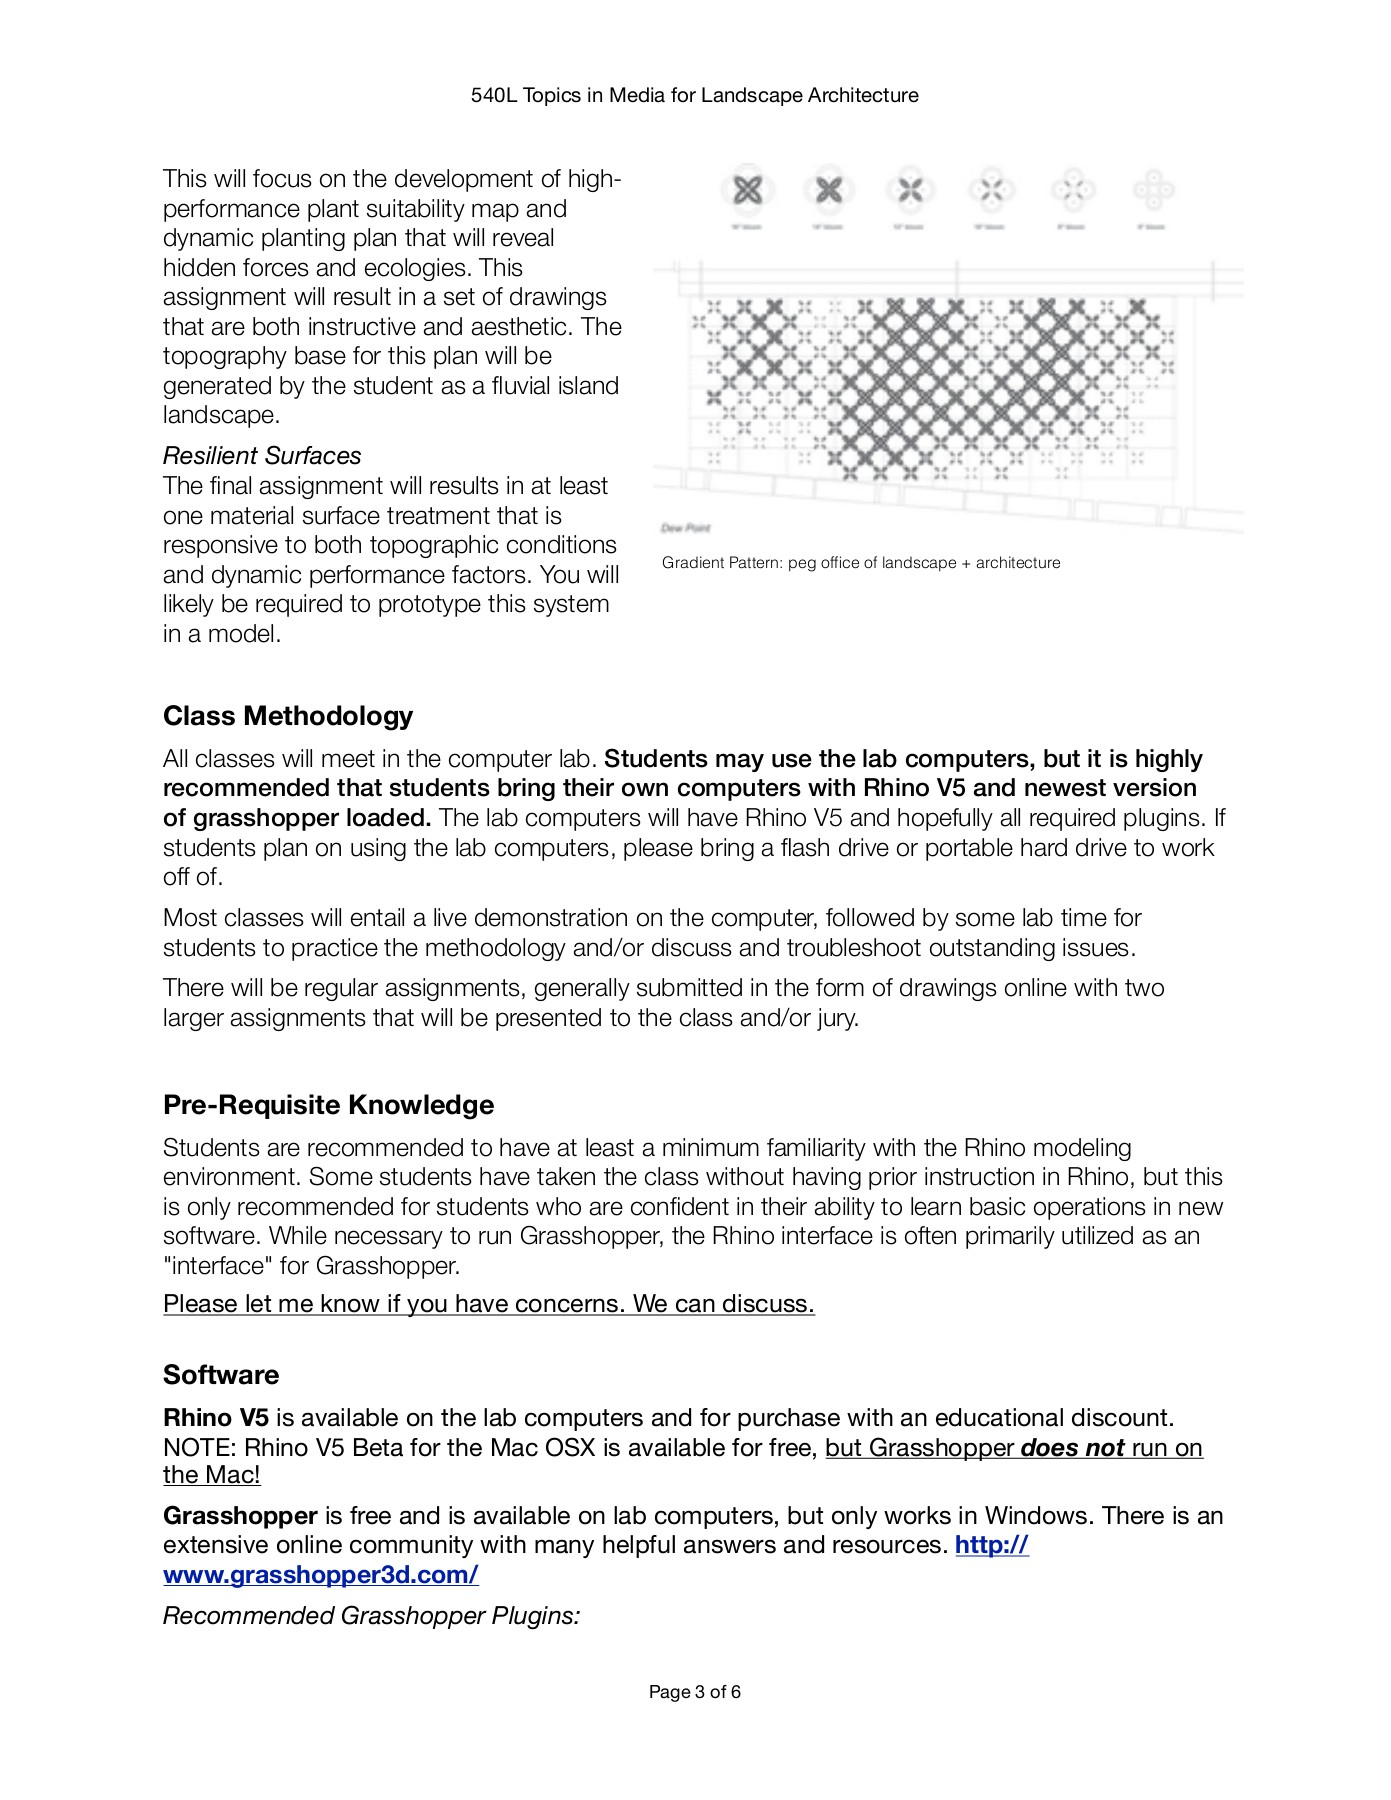 Grasshopper For Landscape Architecture Resilient Surfaces Flip Ebook Pages 1 6 Anyflip Anyflip